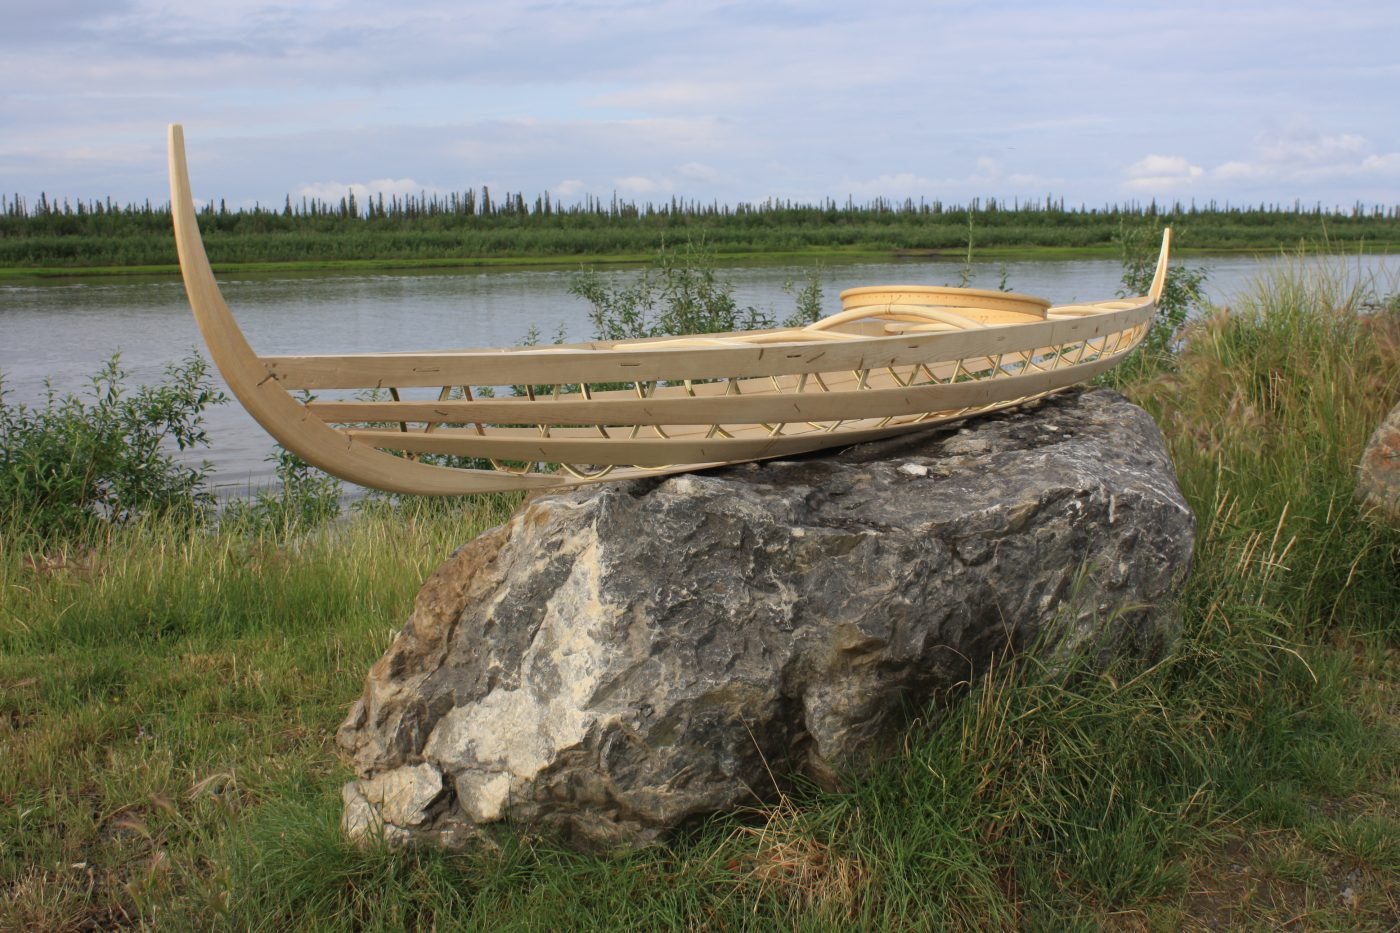 Inuvialuit kayak frame on the Mackenzie river